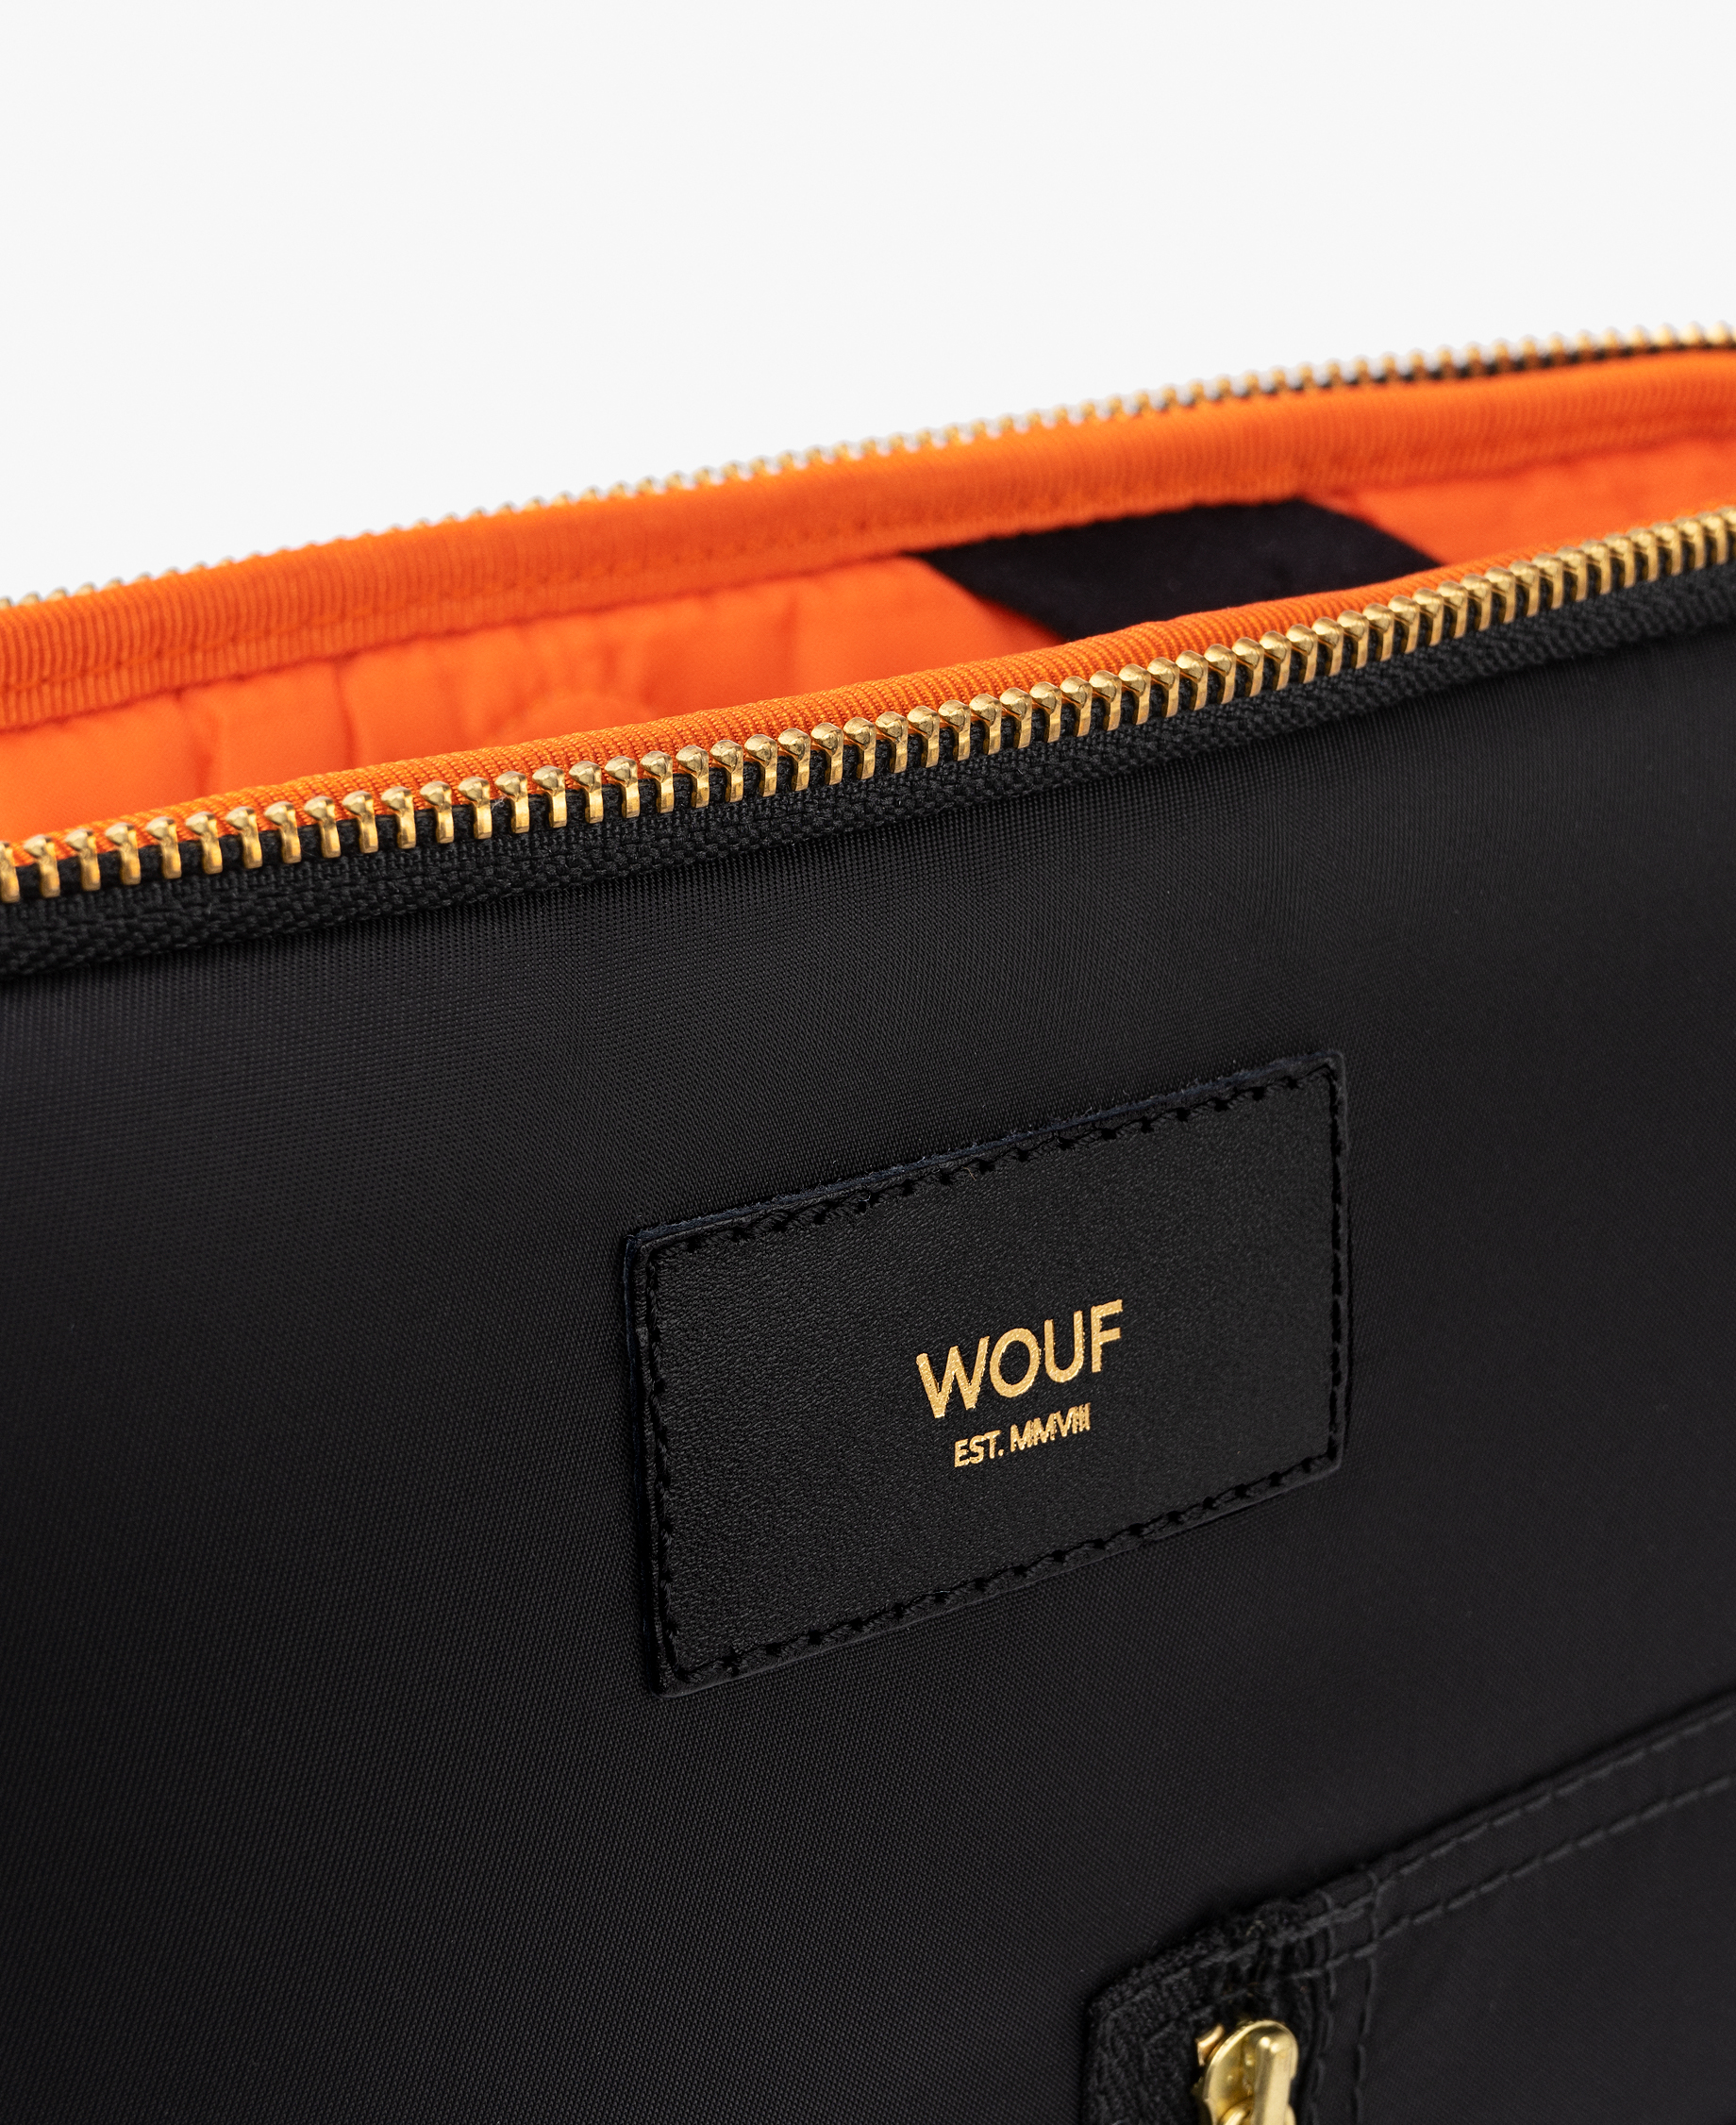 laptop case with an orange compartment